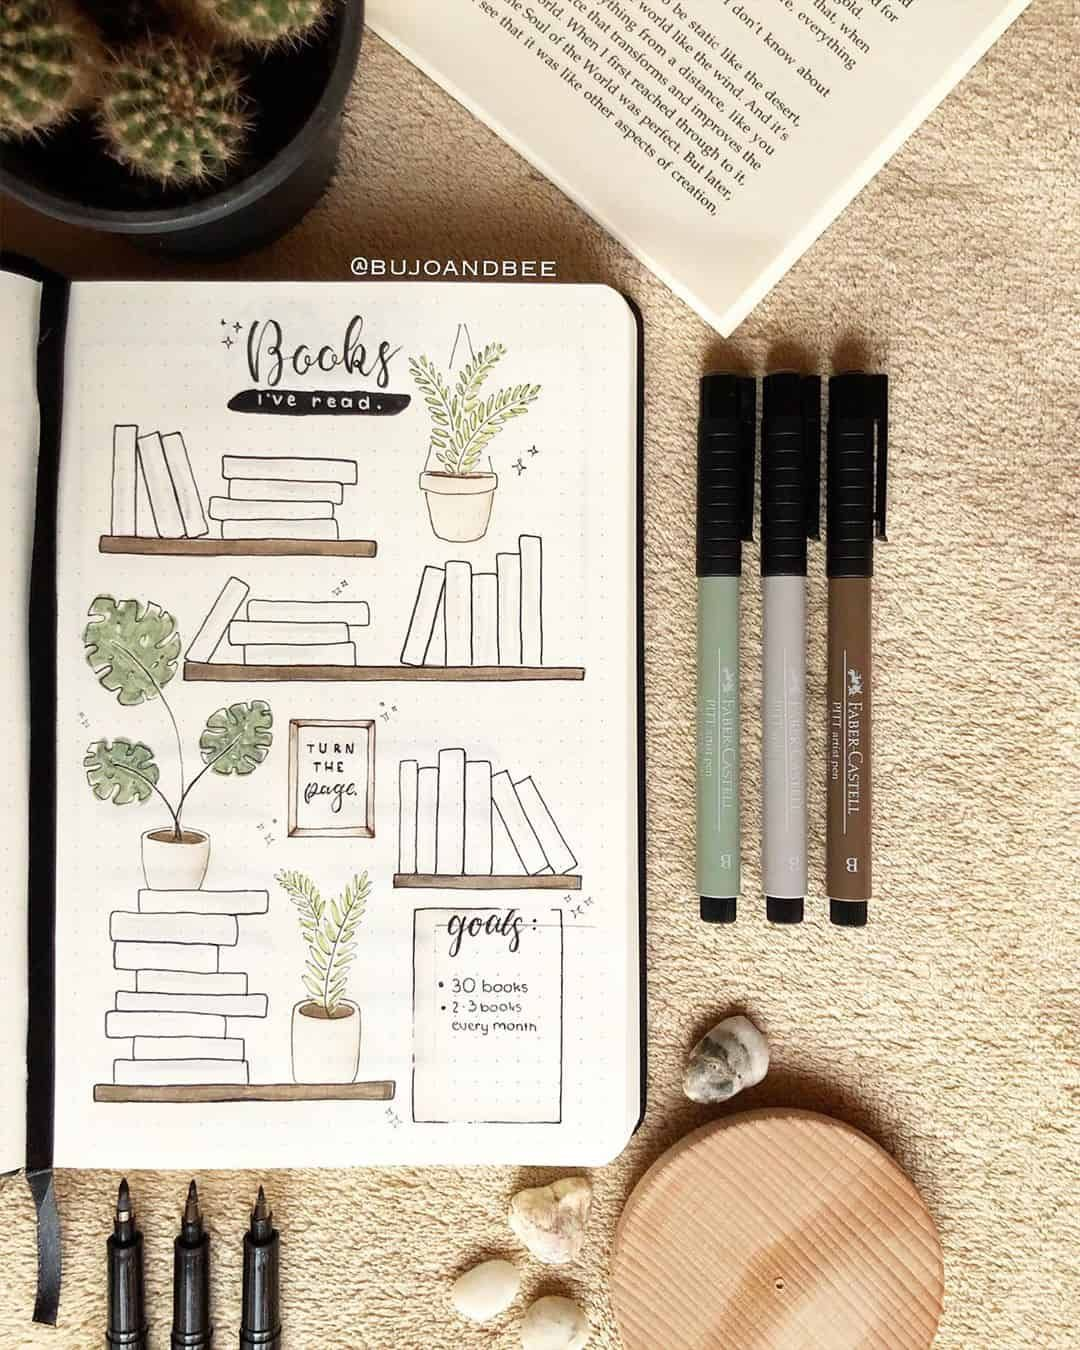 35 Creative Book and Reading trackers for your Bullet journal